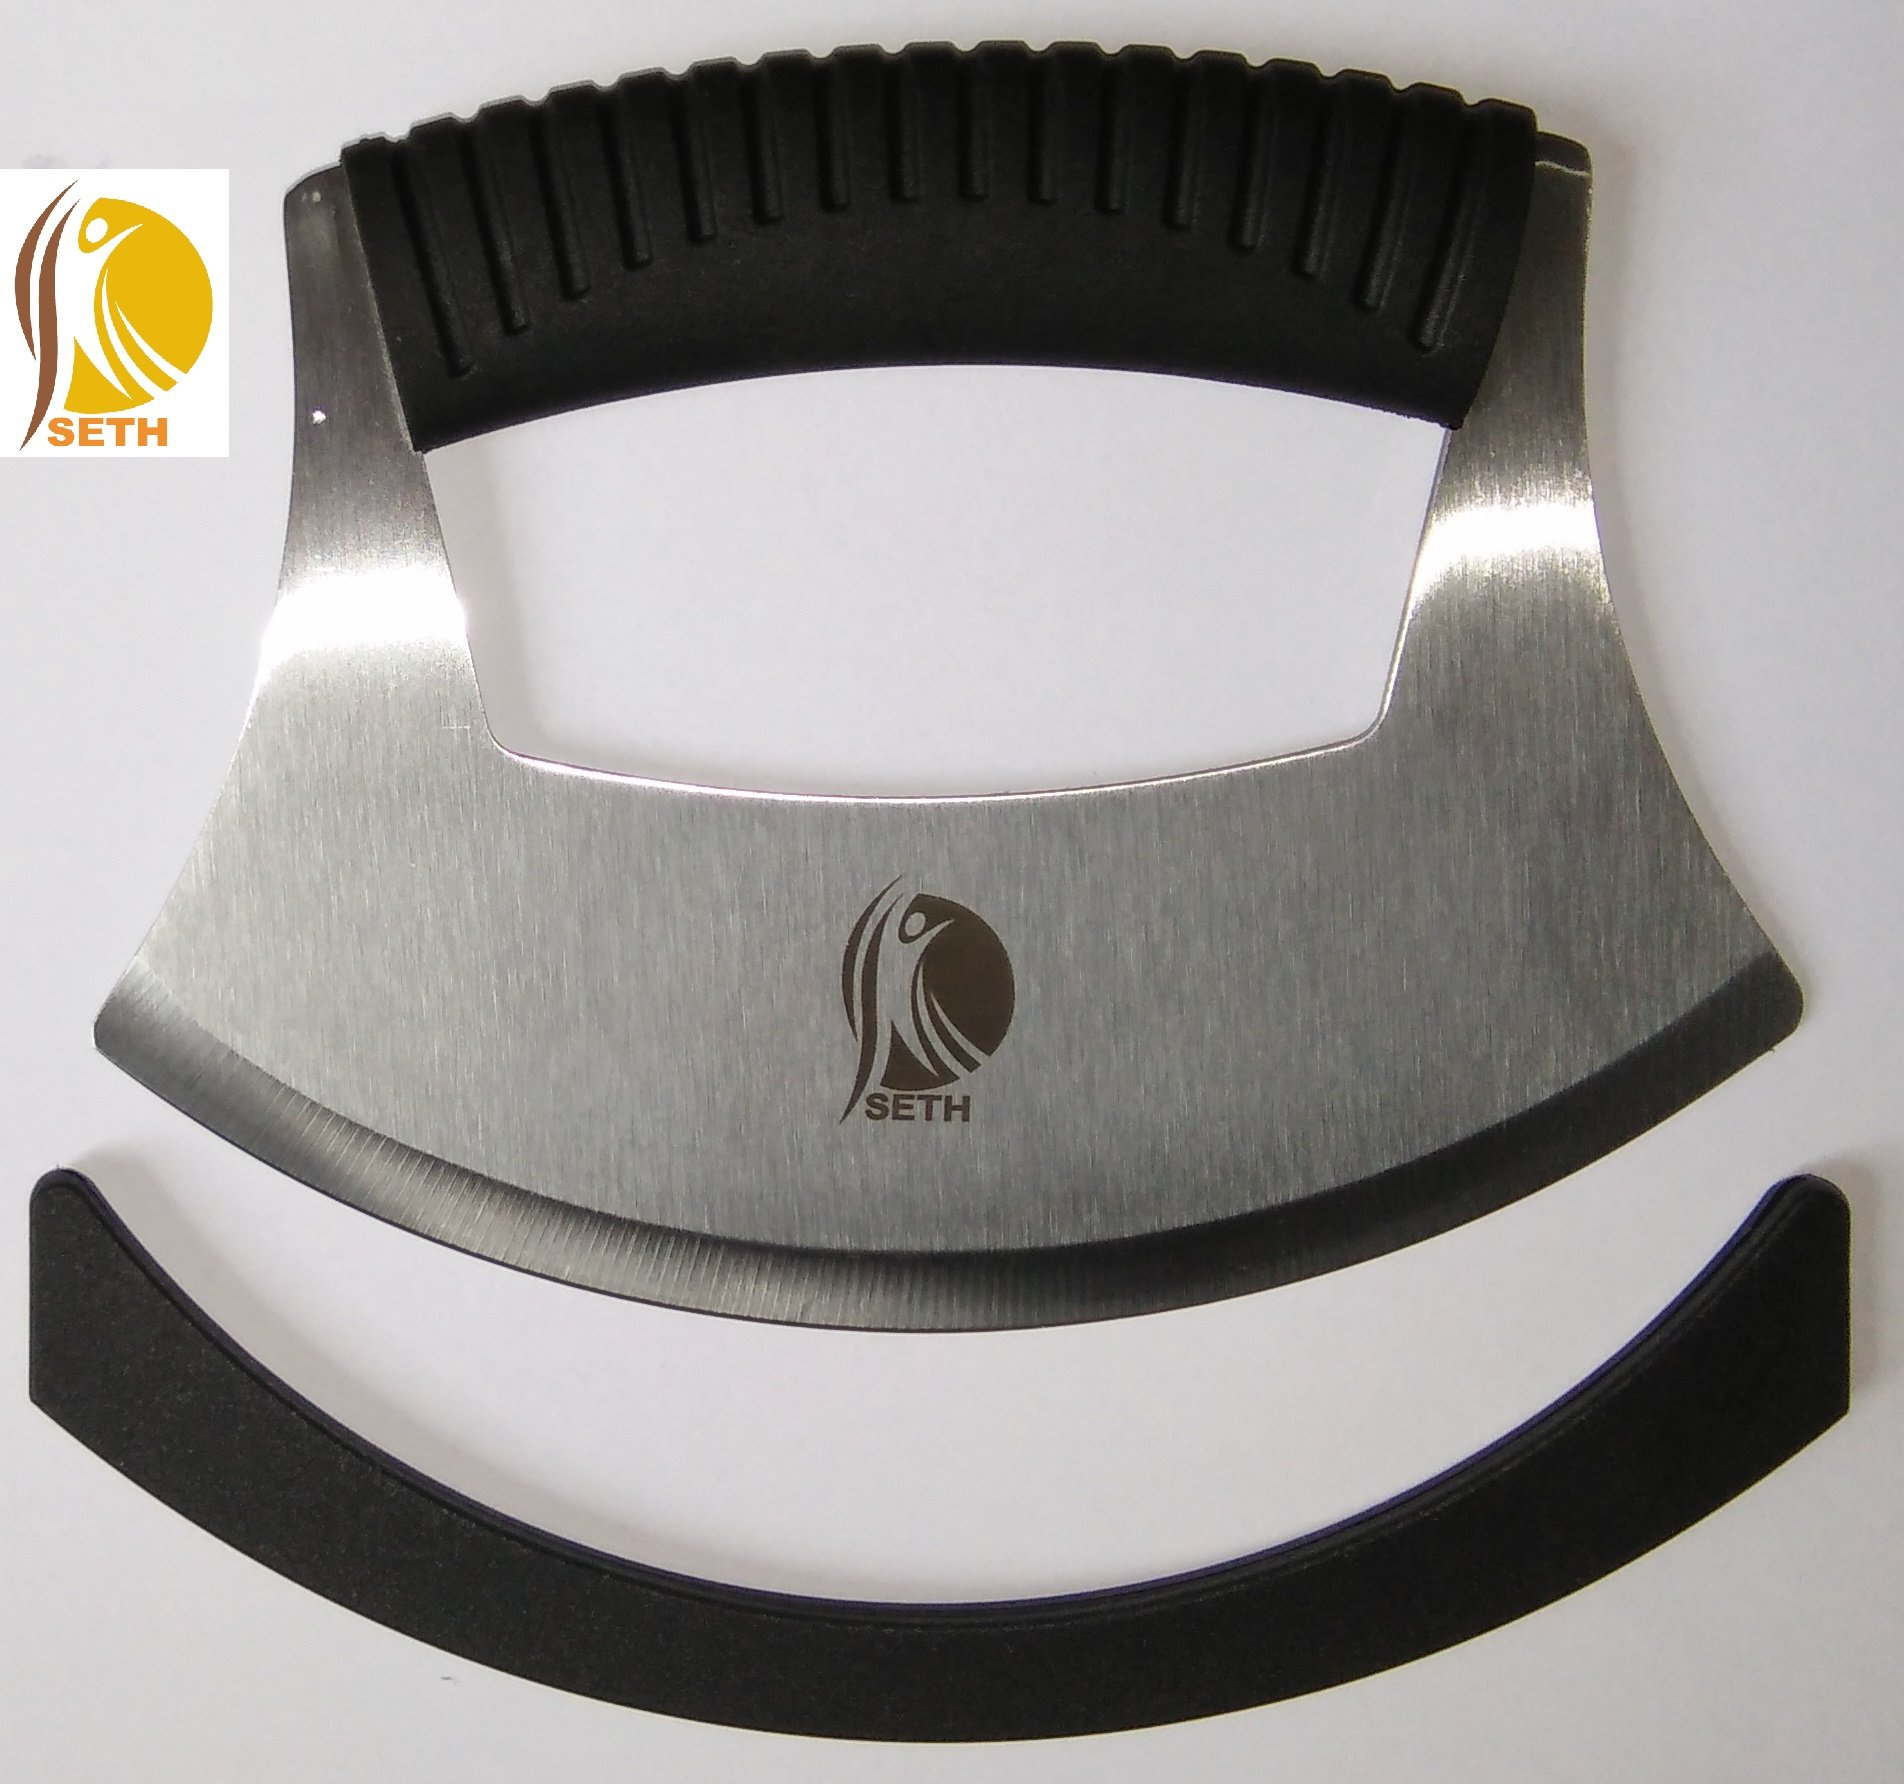 Pizza Cutter|Mezzaluna Chopper|Mincing Knife|Pie Cutter Slicer|Brownie Cutter|Rocker Slicer Stainless Steel Blade as Mezzaluna Chef Knife Fruit Vegetable Salad Chopper with Protective Cover.